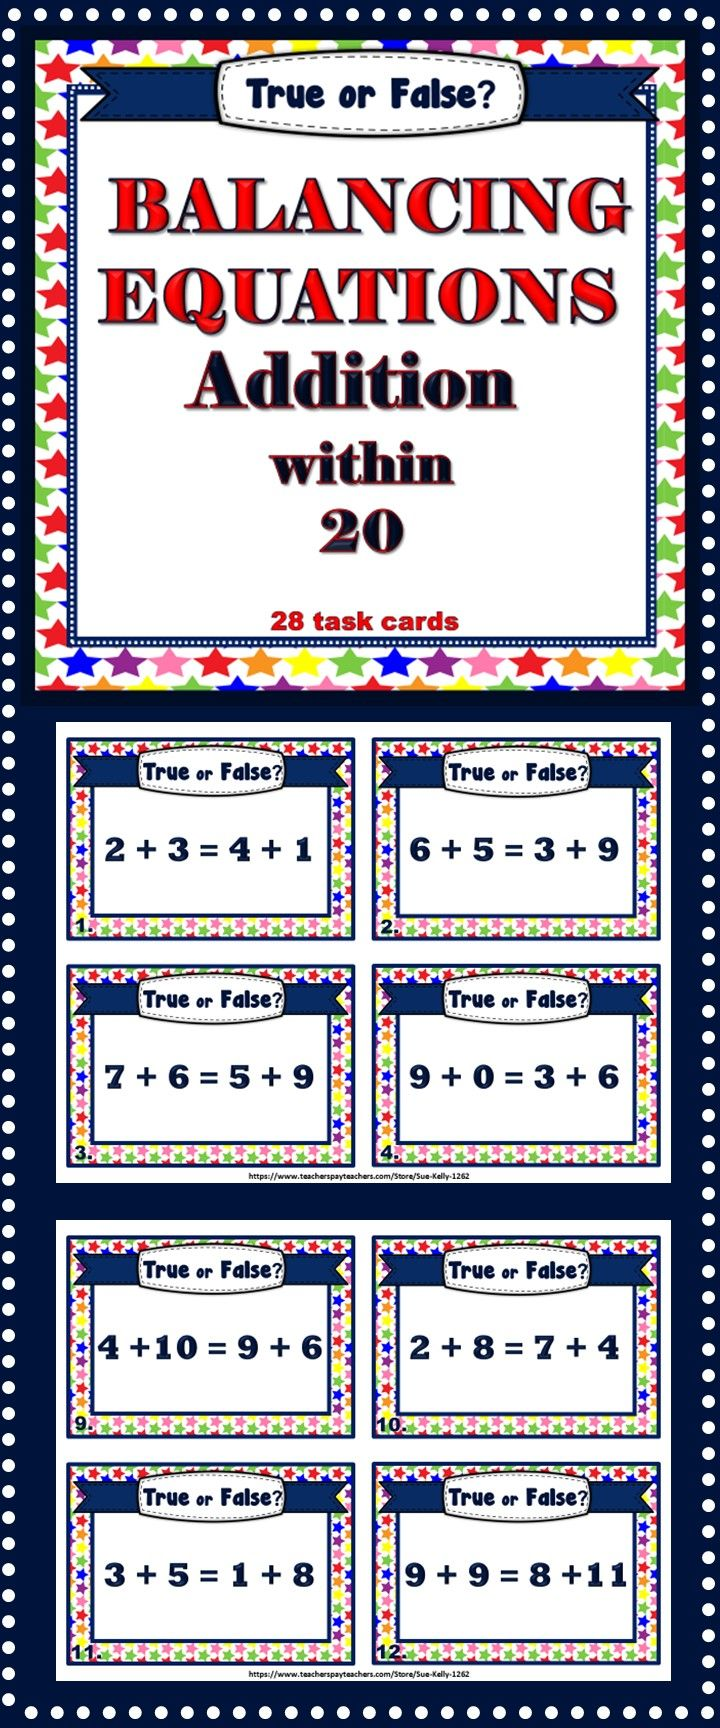 Balancing Equations Addition Within 20 Task Cards Balancing Equations Task Cards Equations Balancing equations addition and